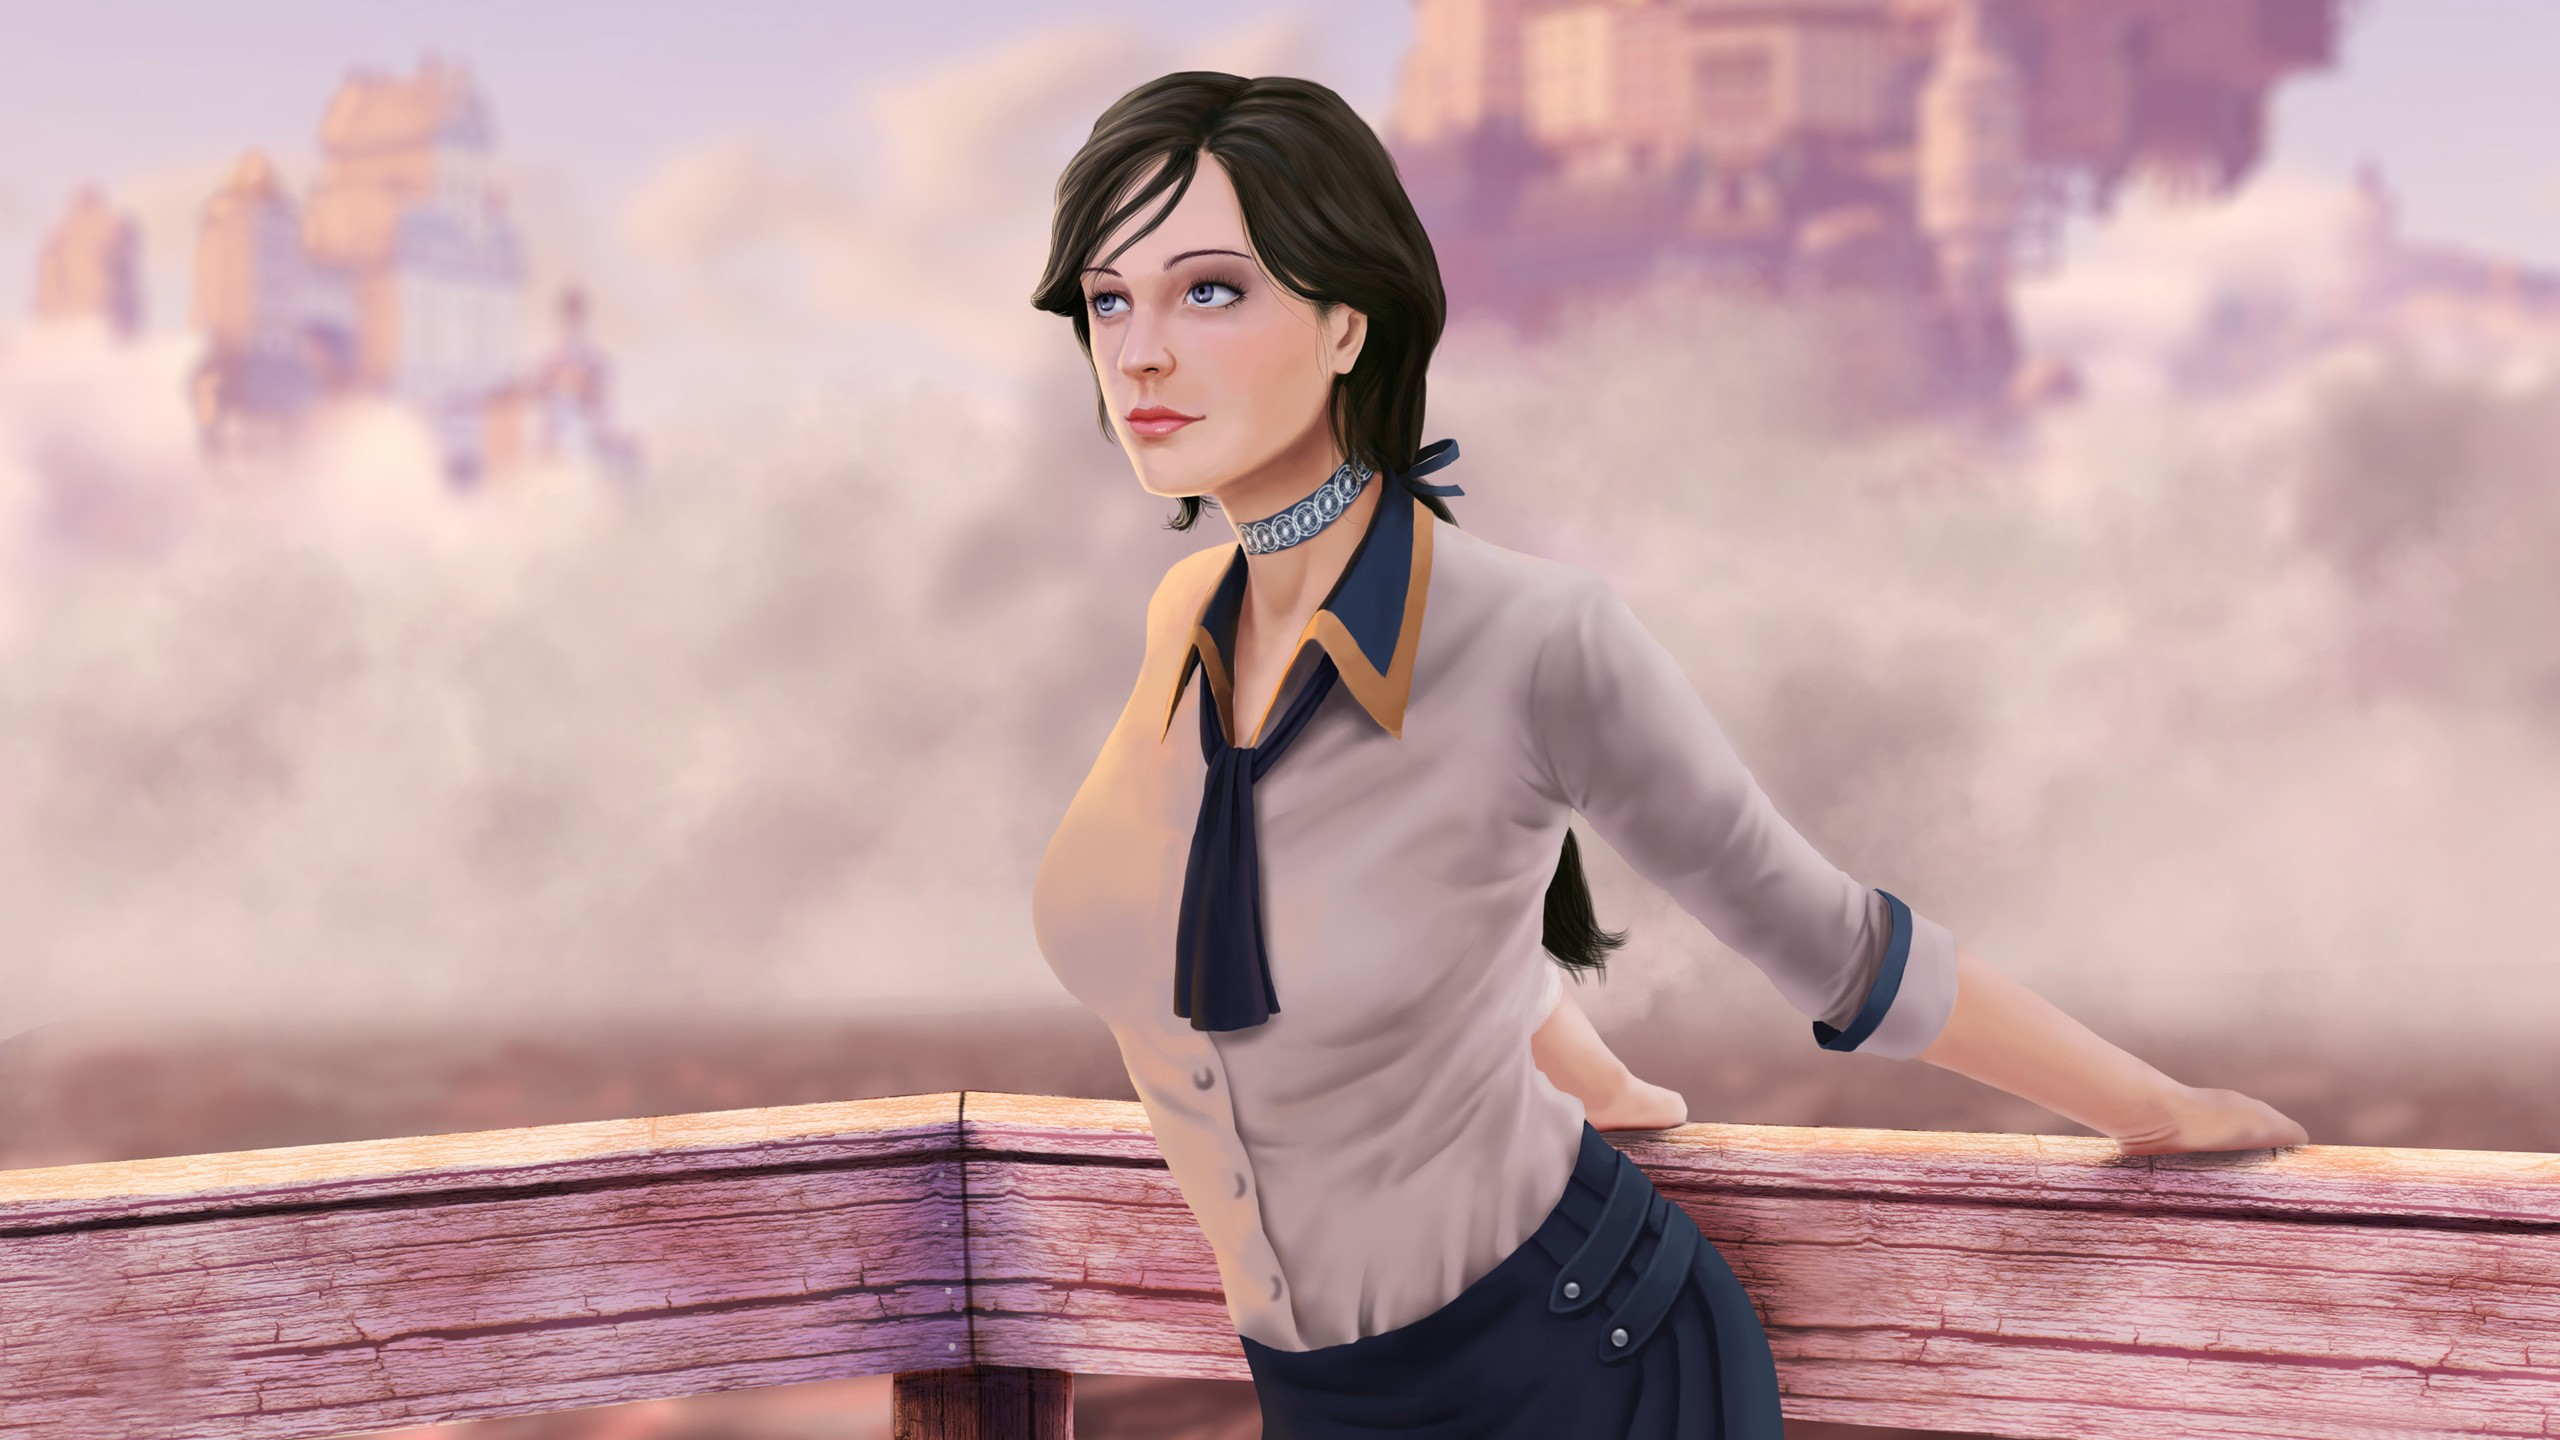 Cute Girl Wallpaper For Iphone 5 Elizabeth Bioshock Infinite Wallpapers Hd Wallpapers